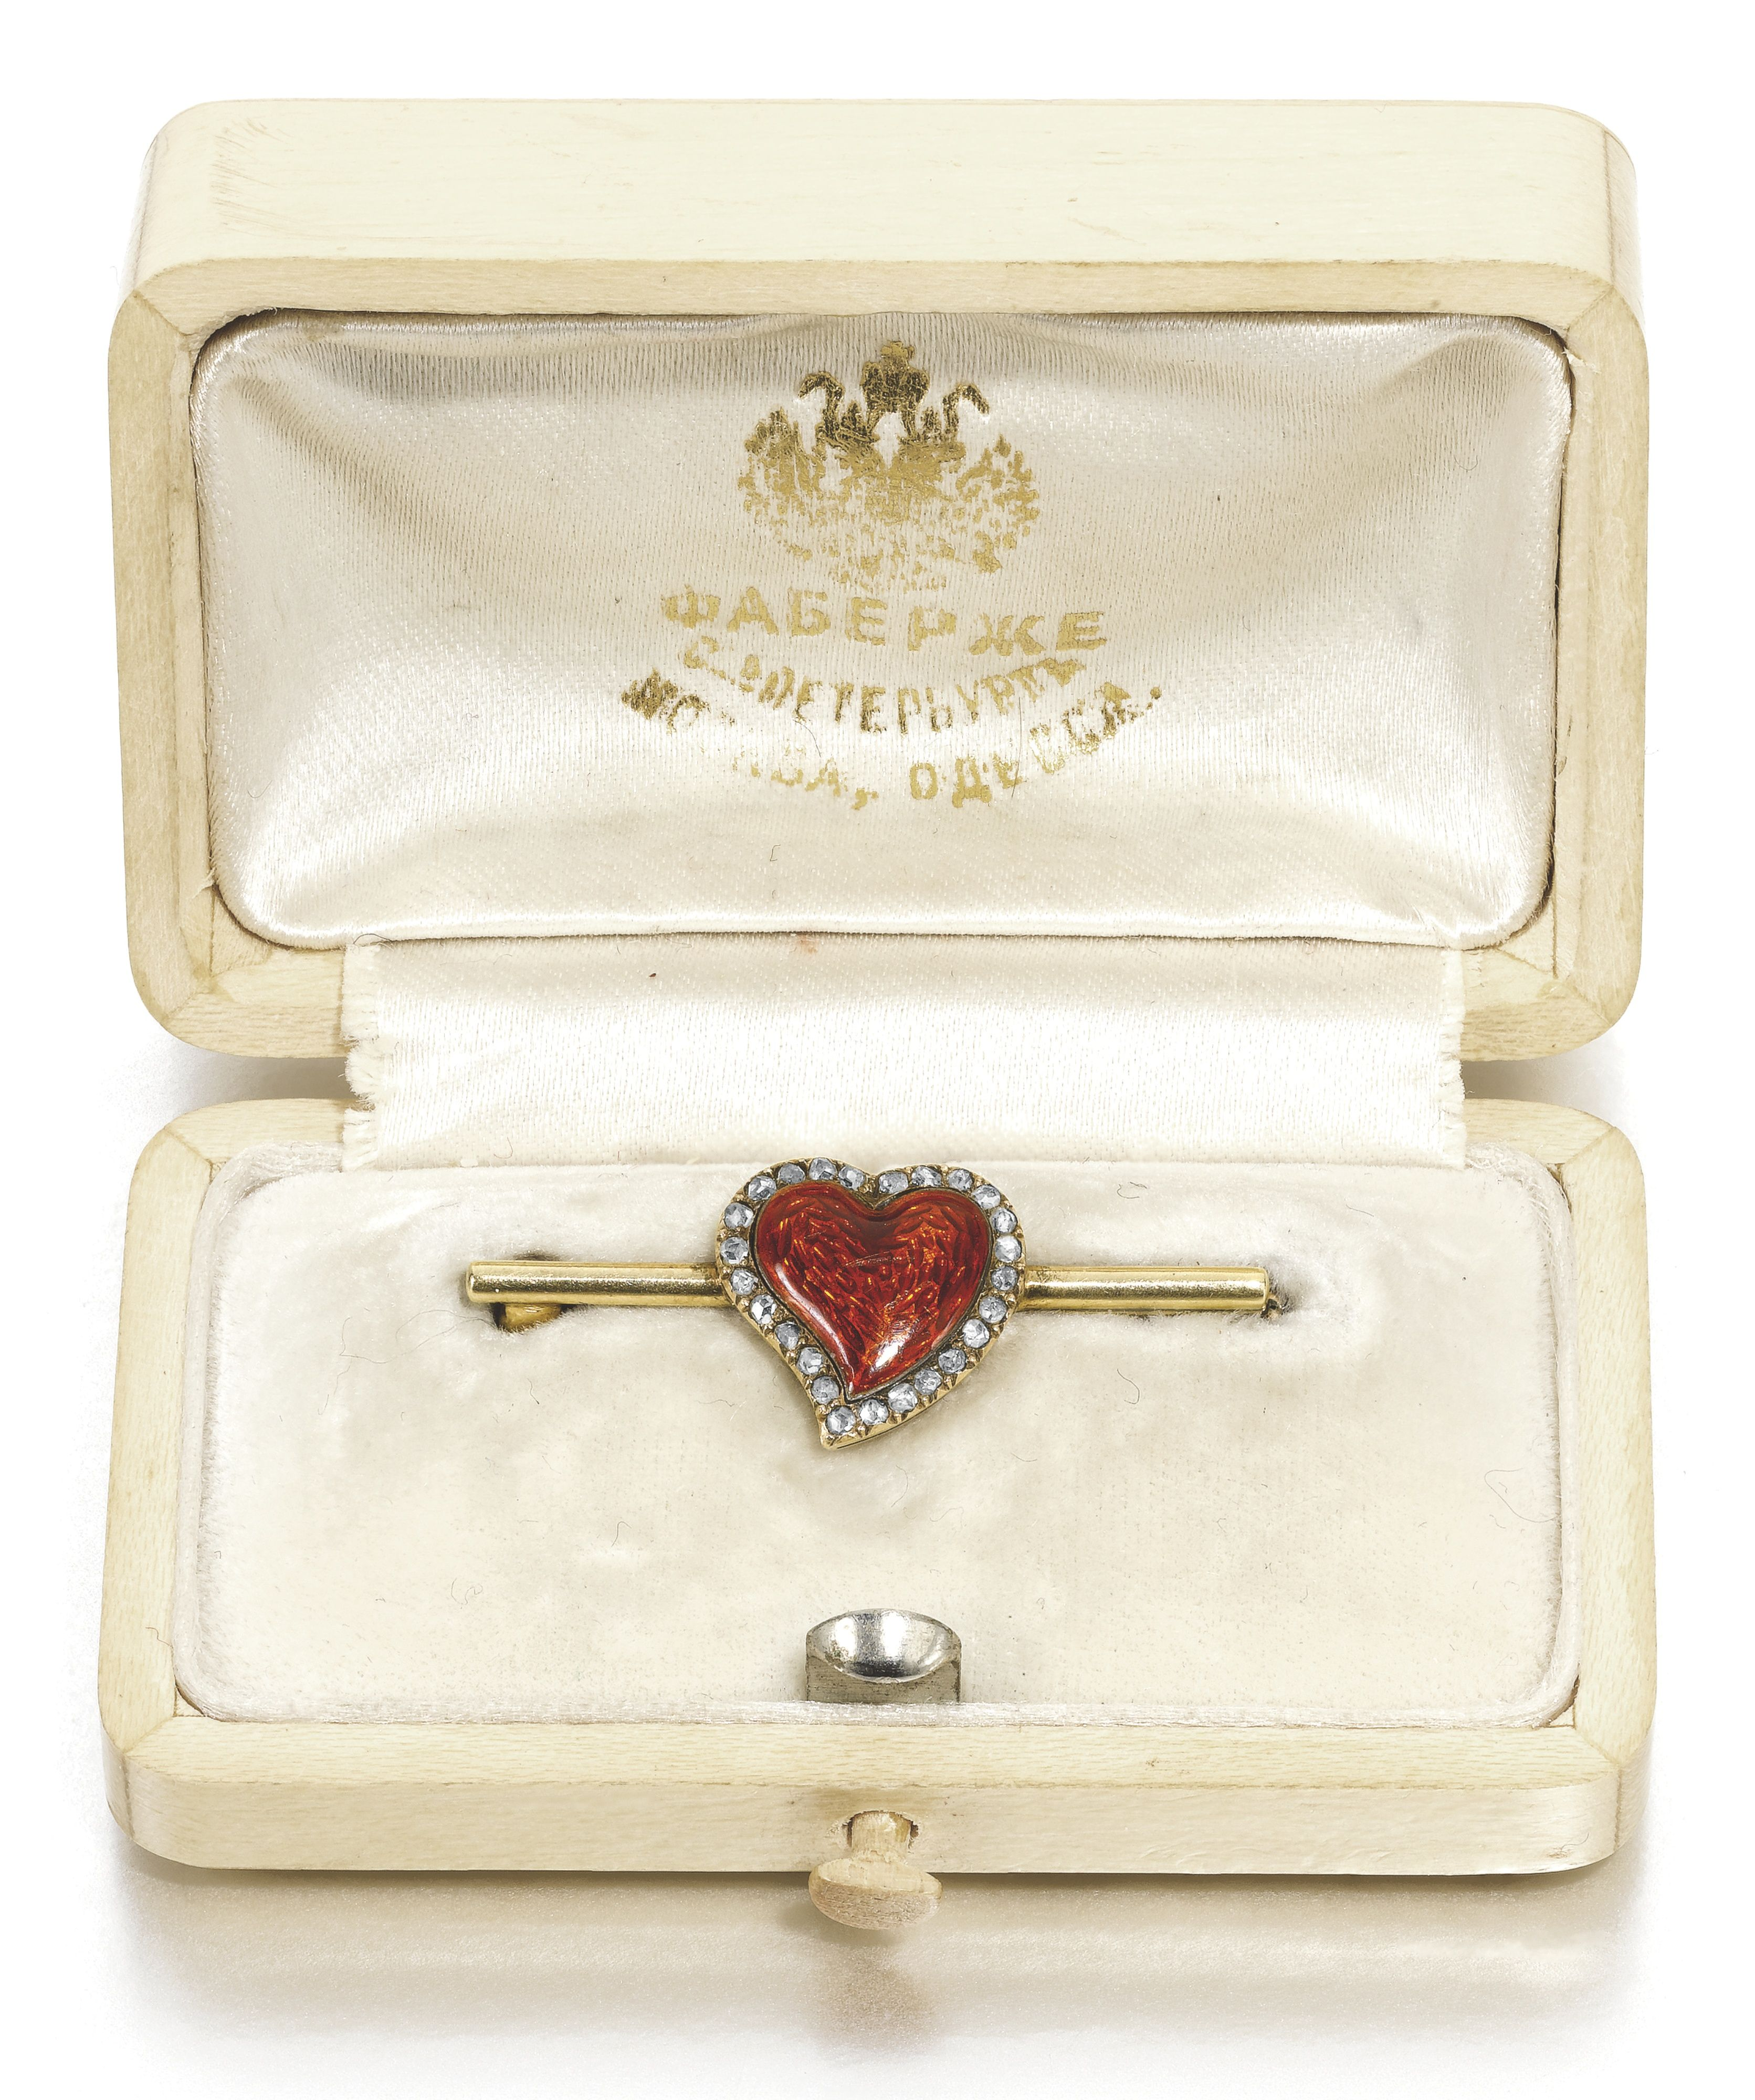 A Fabergé jewelled gold and enamel brooch, St Petersburg, 1899-1904, the gold bar centred with a translucent red enamel heart within a border of rose-cut diamonds.